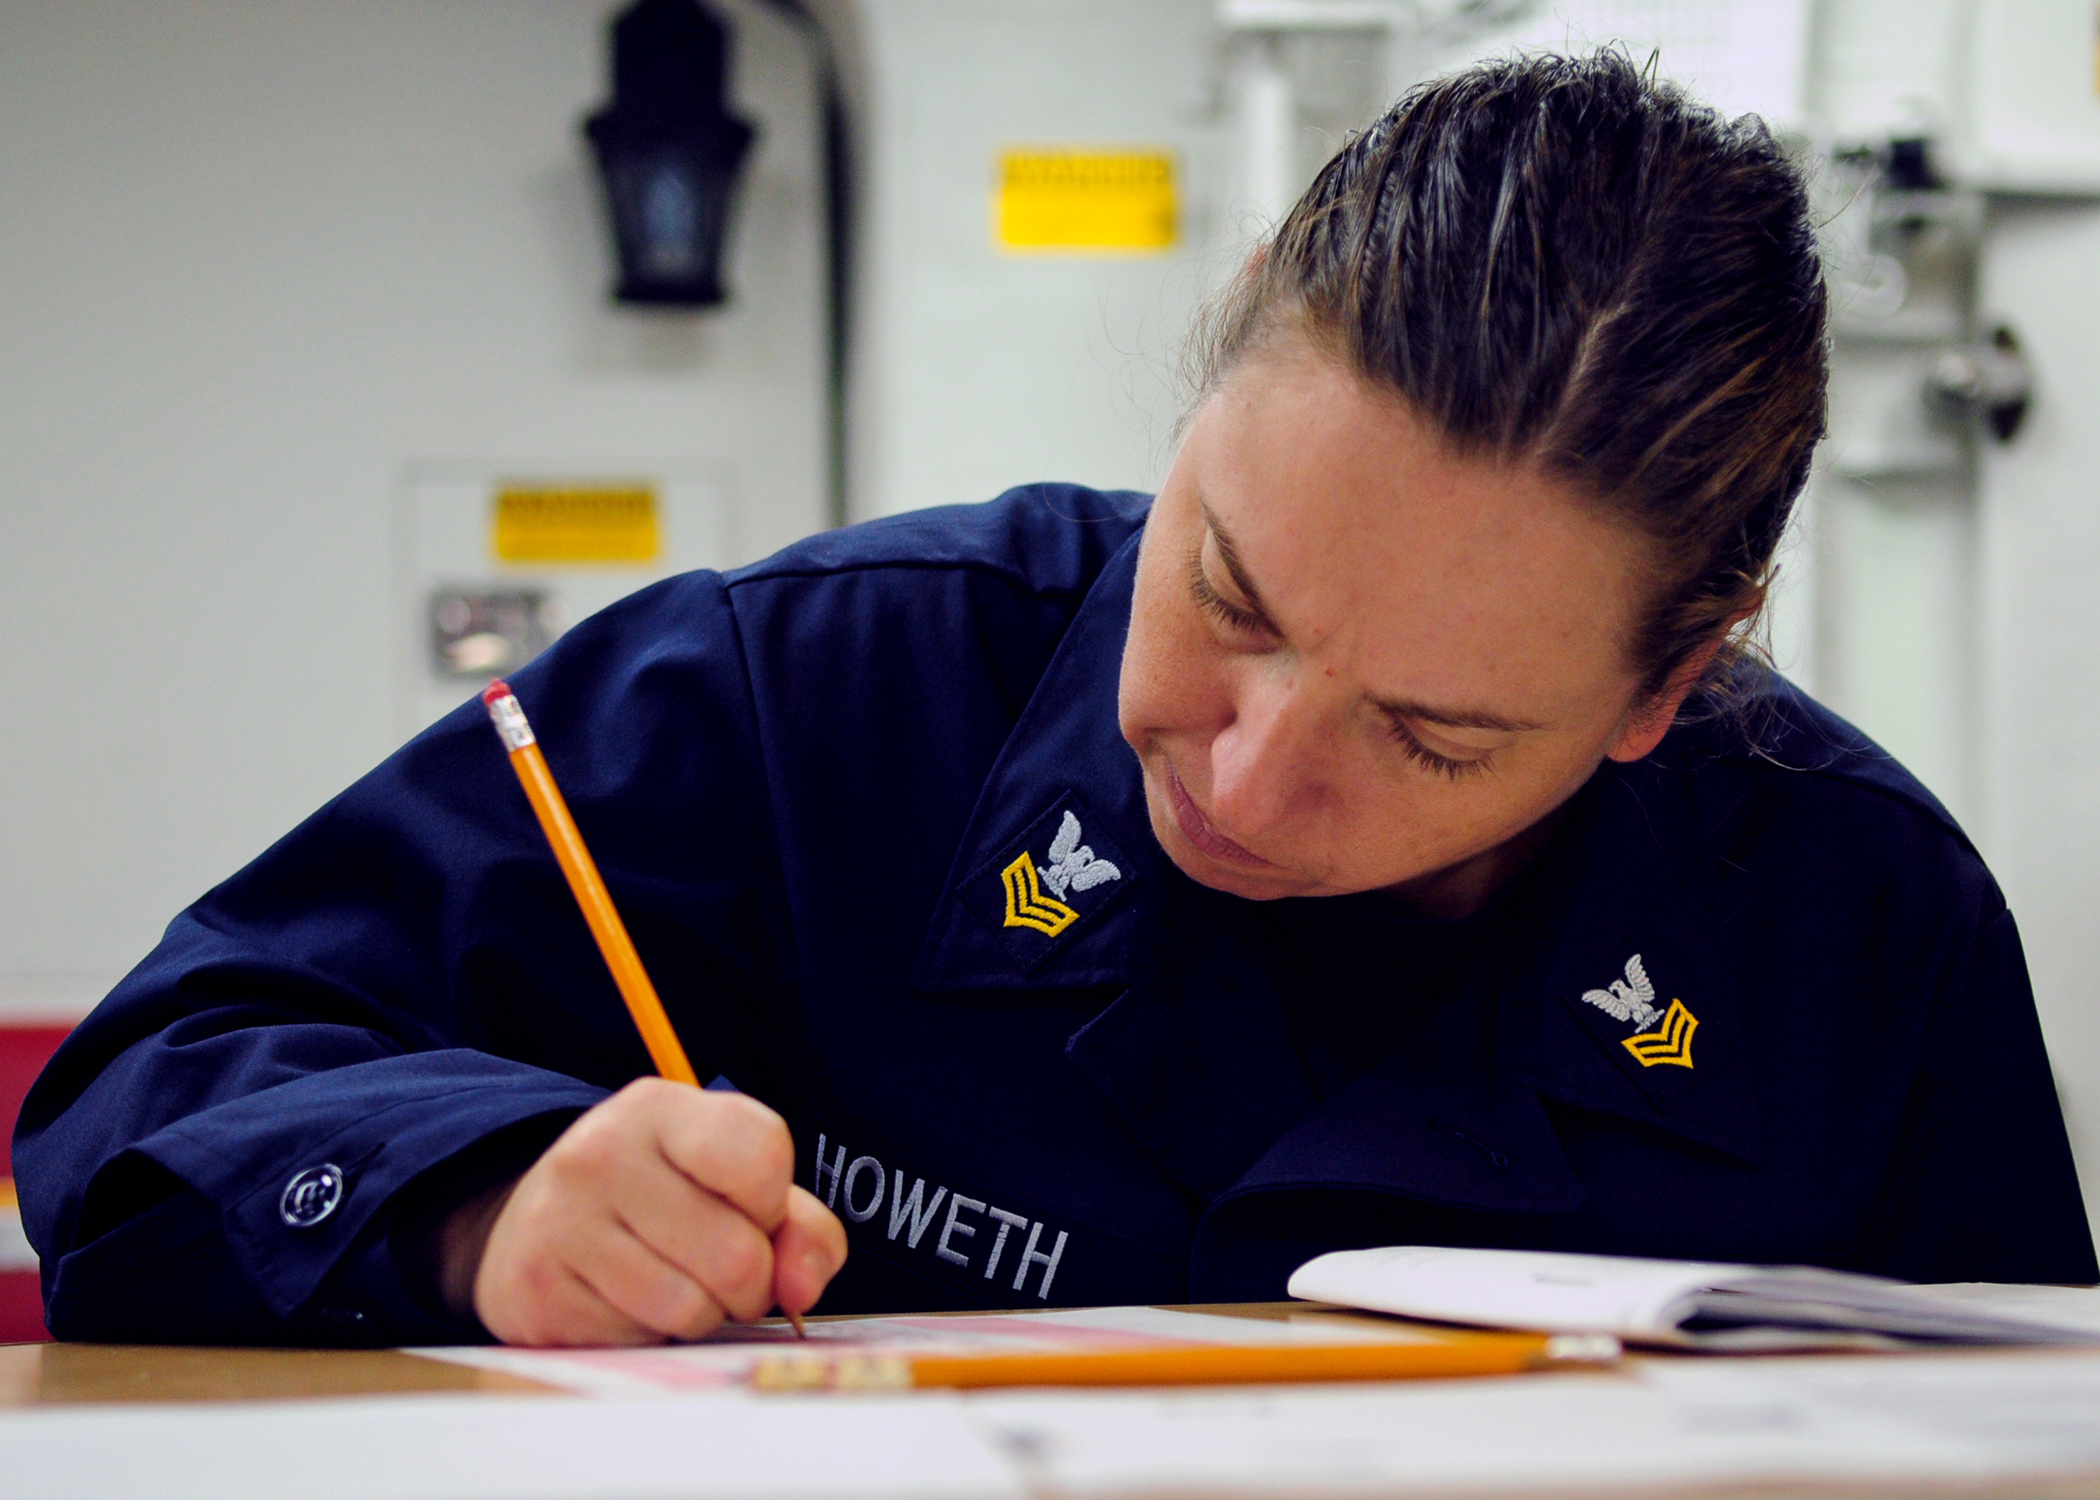 File:US Navy 120119-N-ZF681-253 Yeoman 1st Class Anna Howeth takes ...